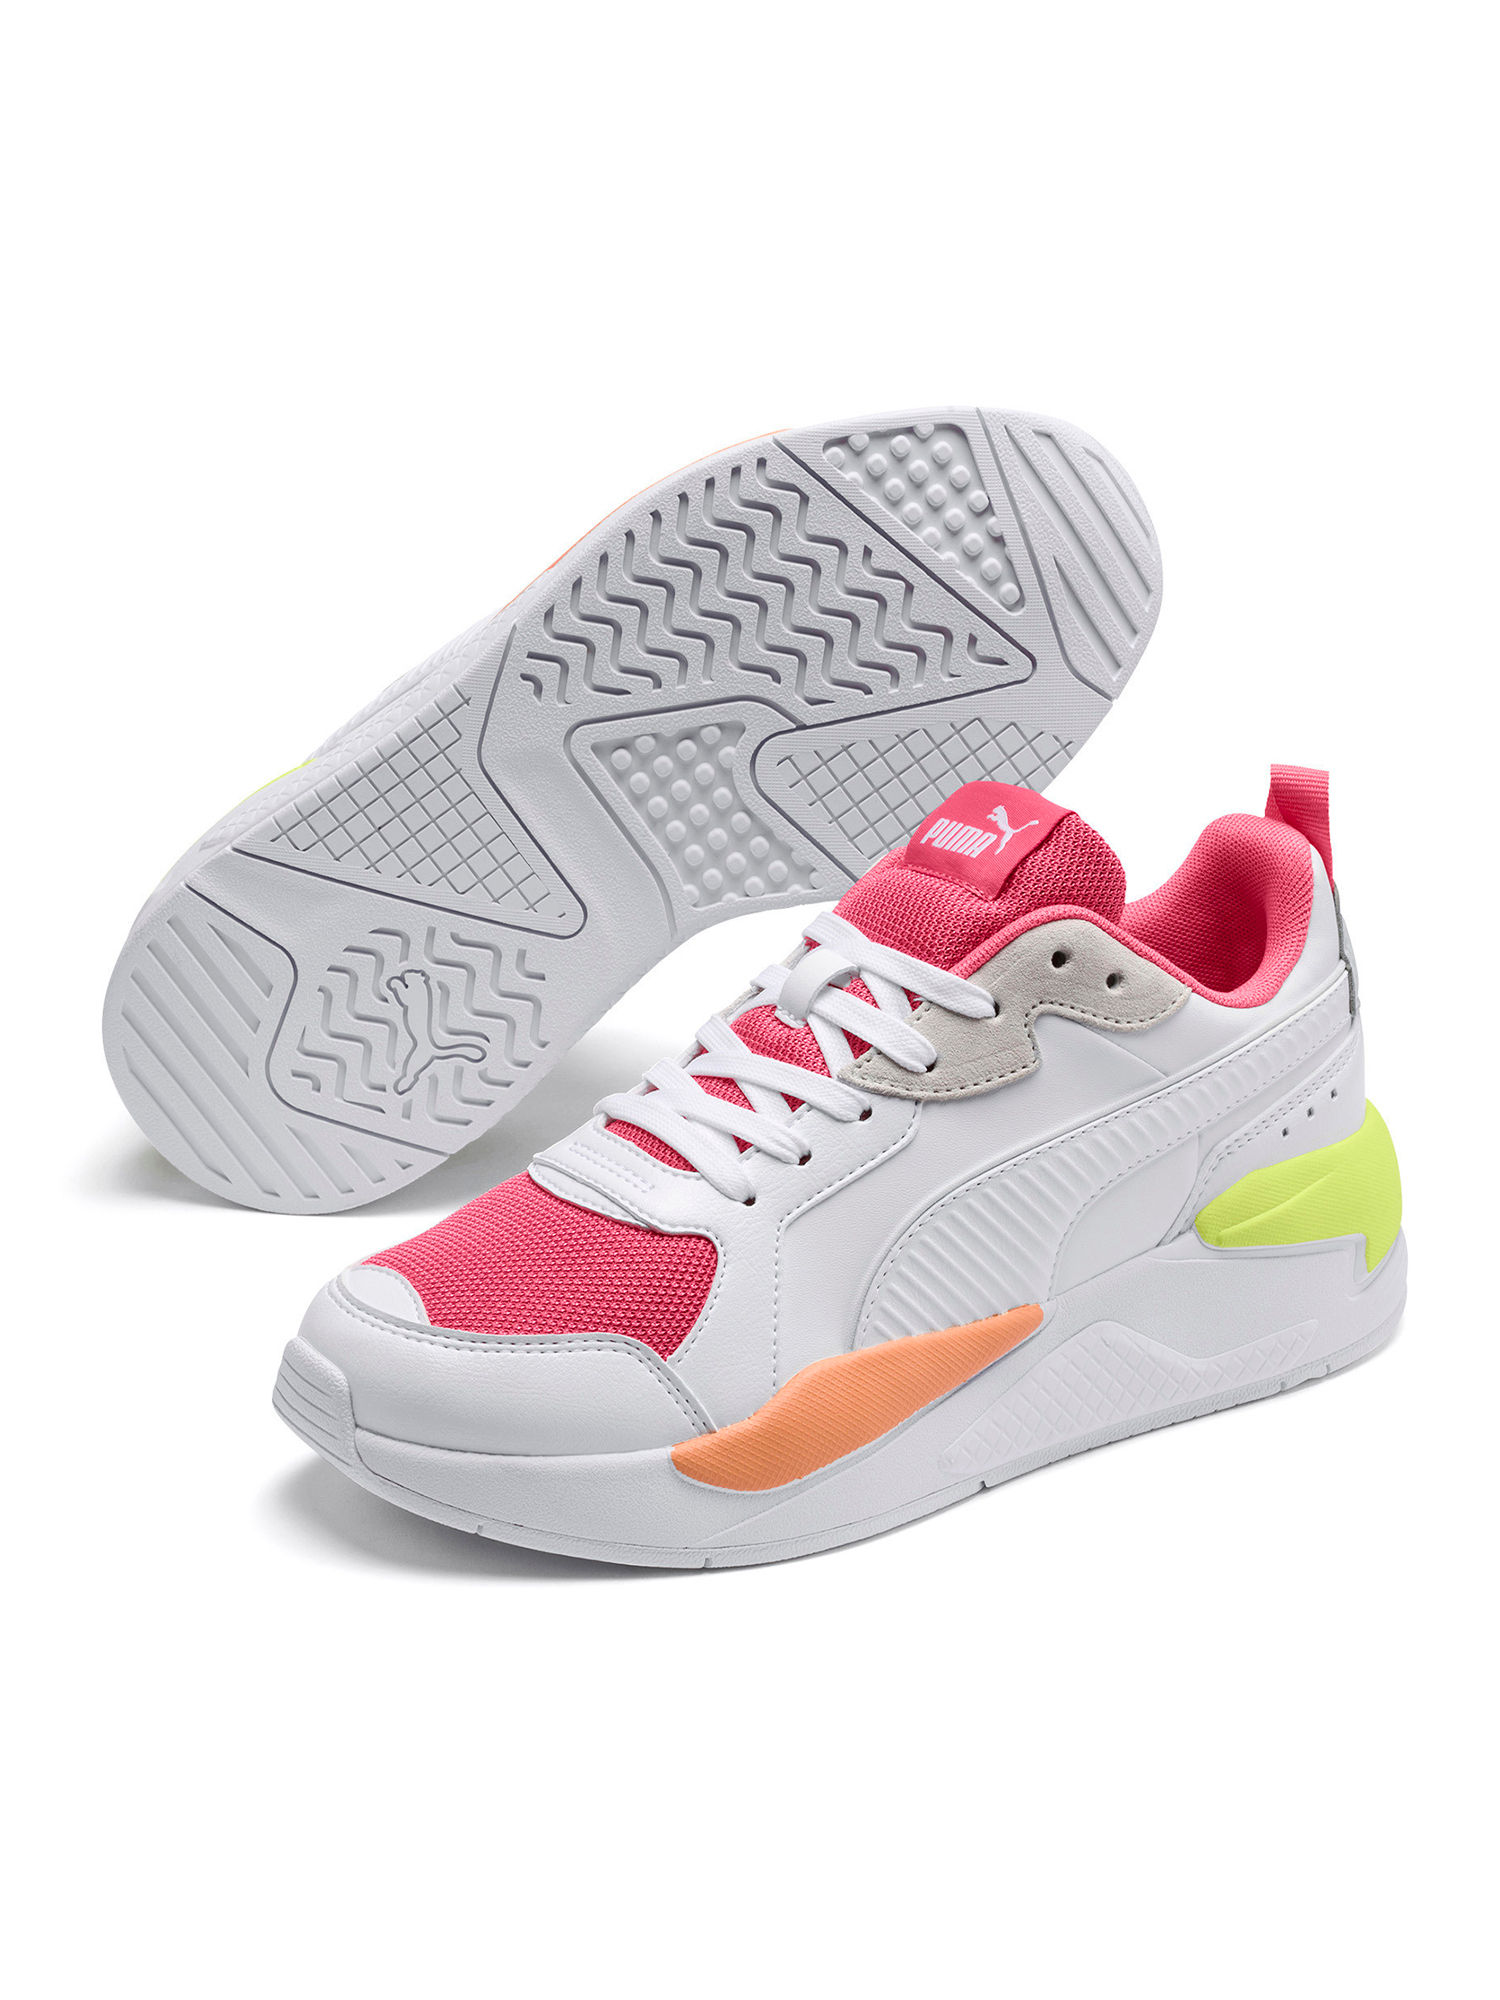 X-Ray Game Unisex Running Shoes